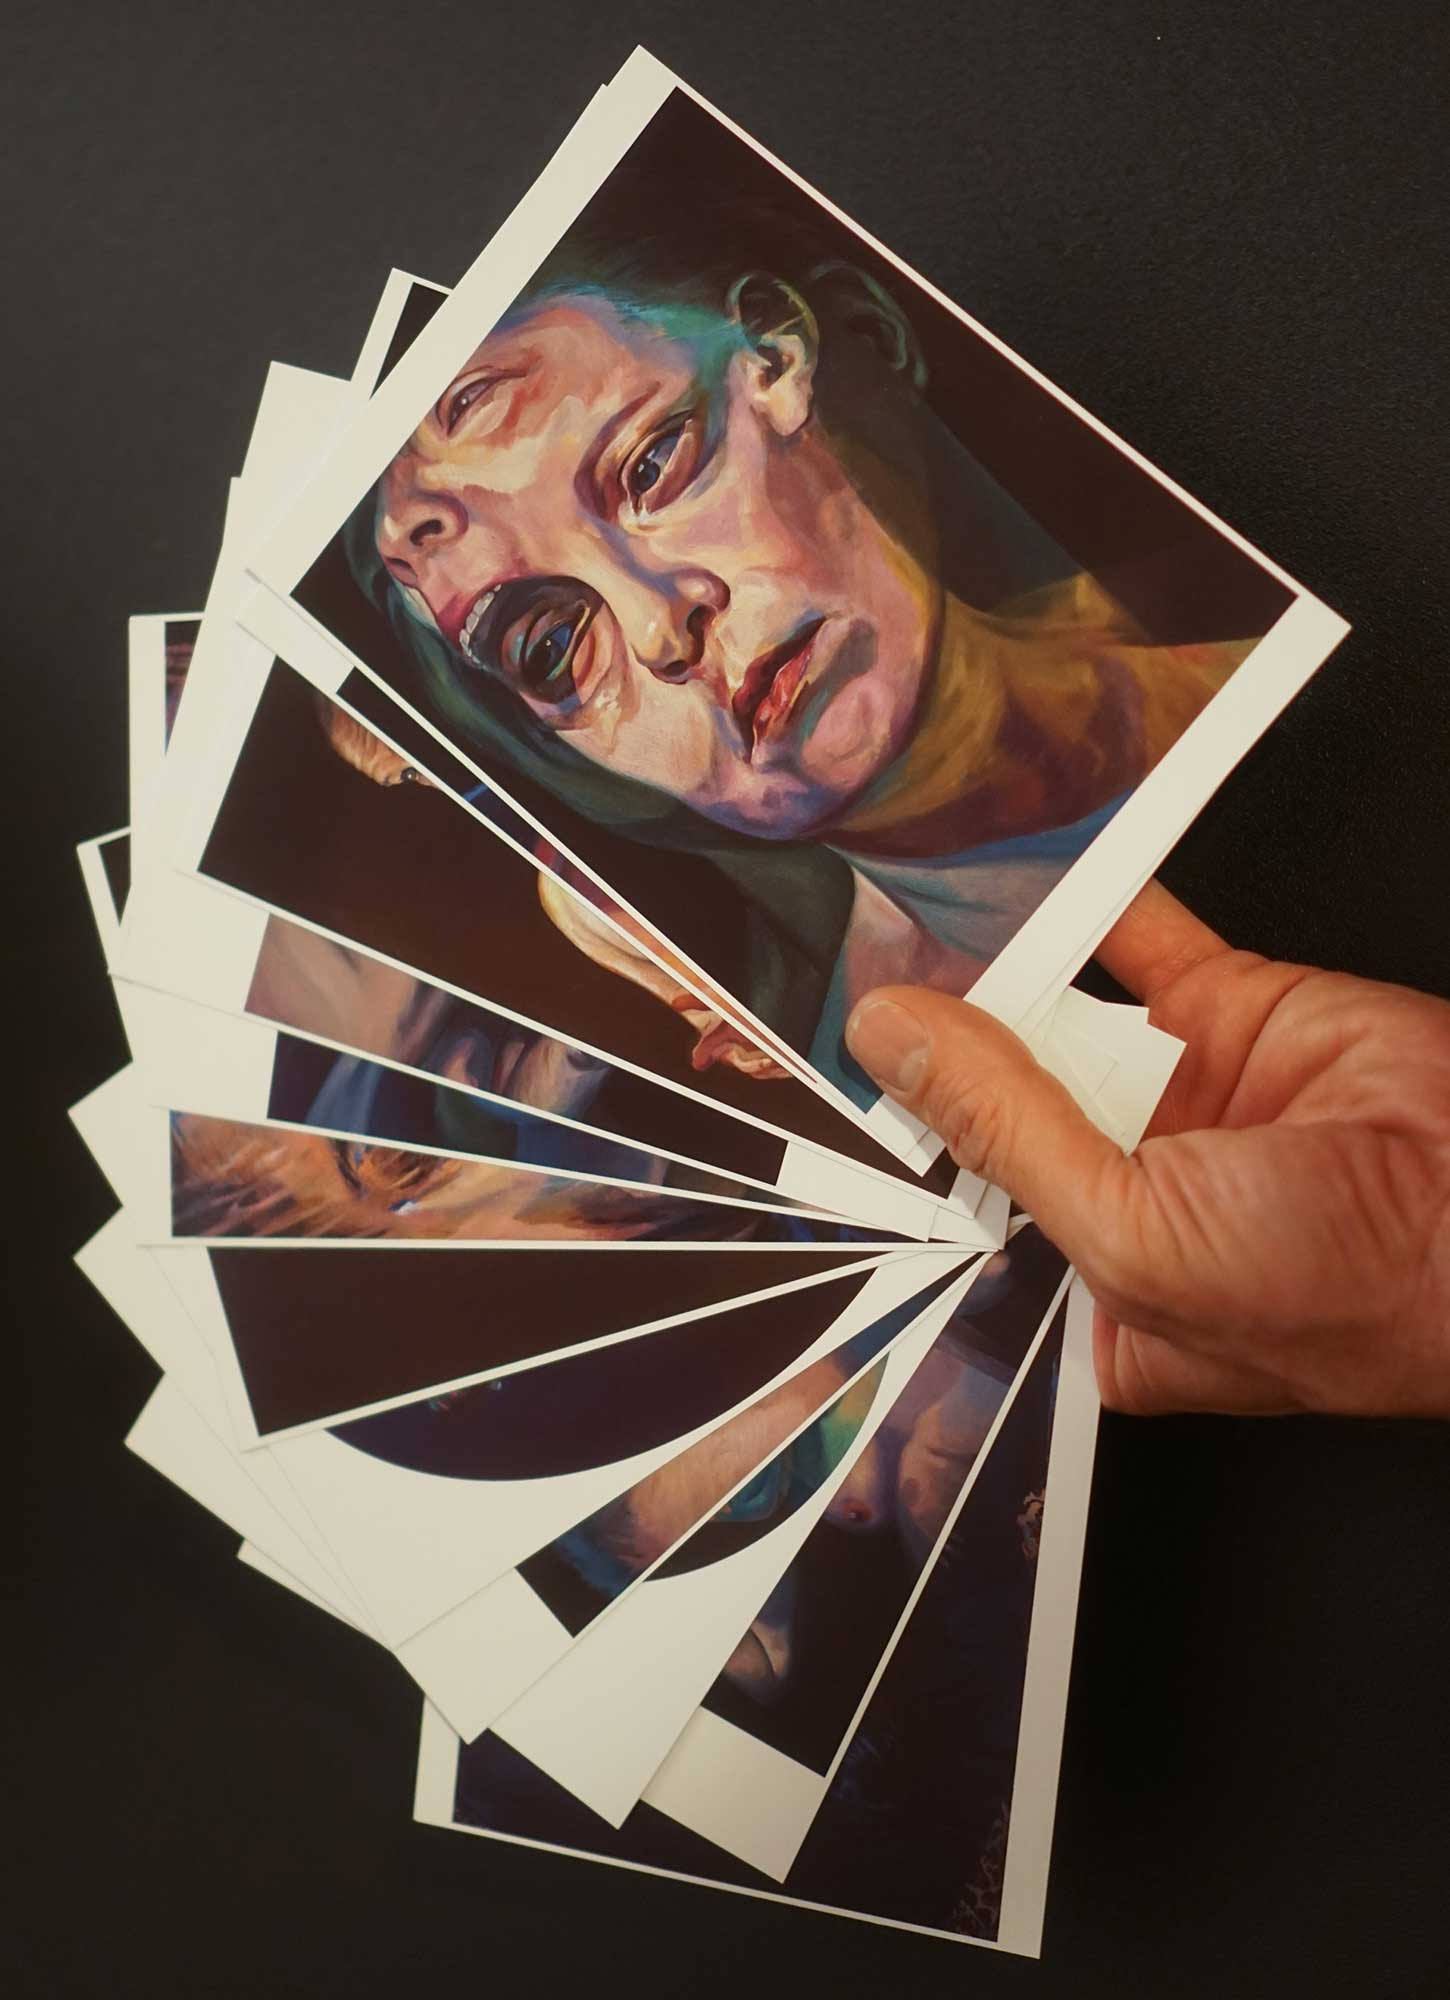 You can purchase Scott Hutchison's Postcards For Sale